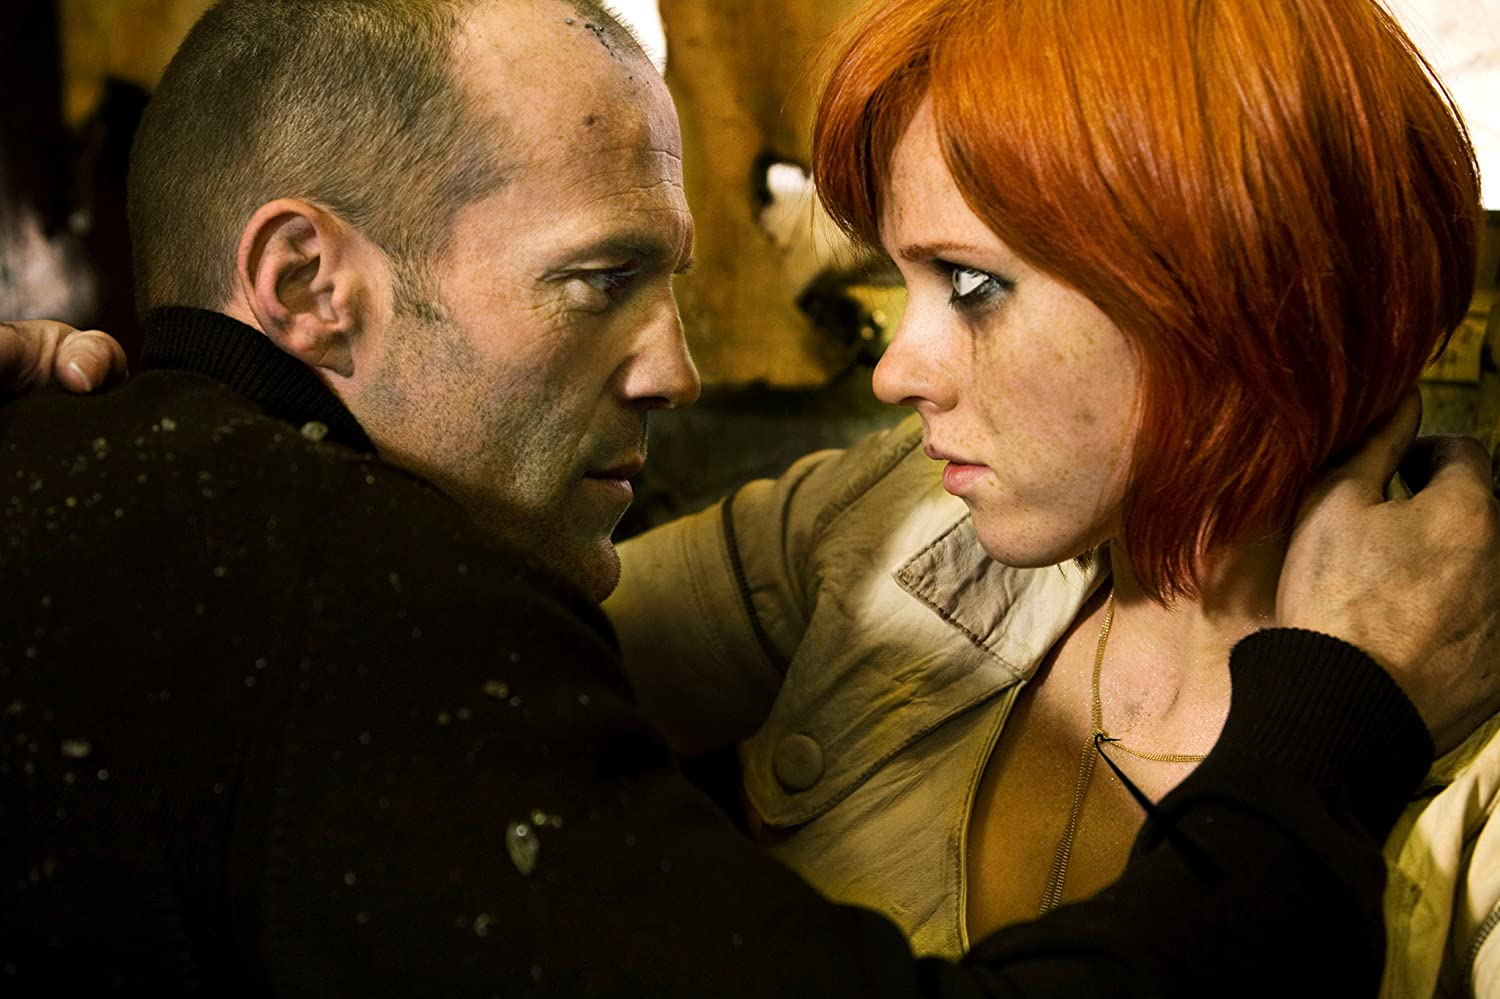 Jason Statham and Natalya Rudakova in Transporter 3 (2008)